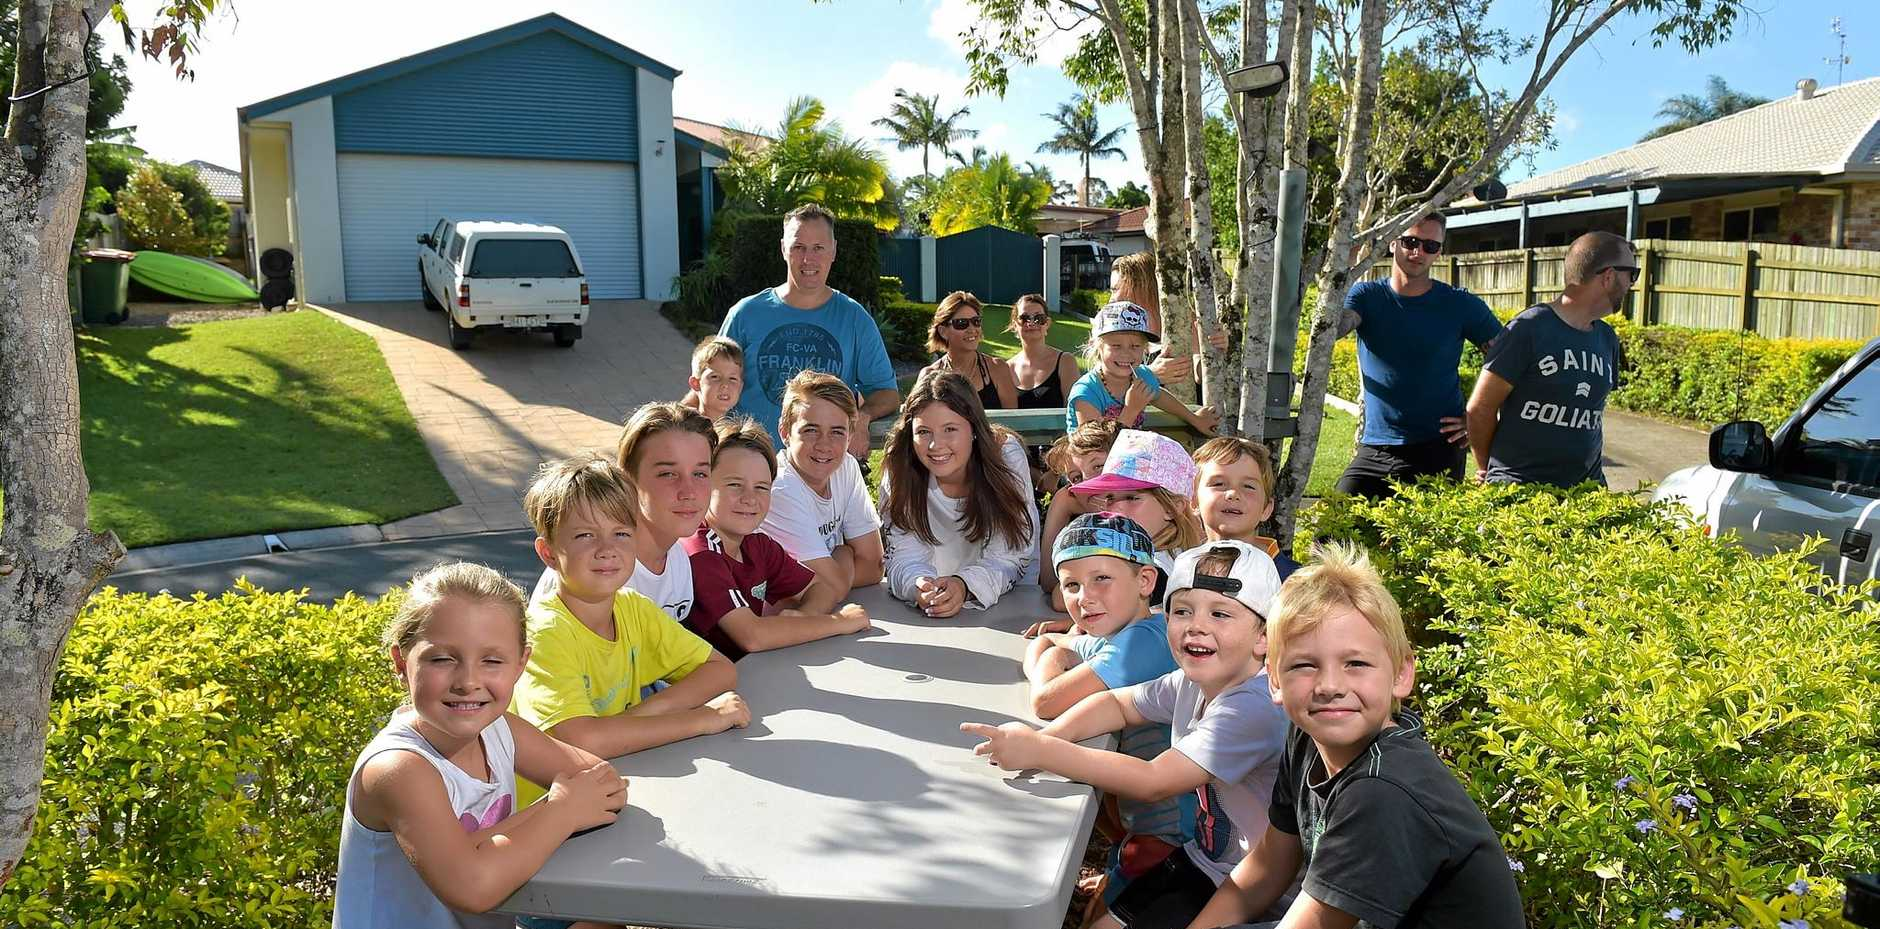 Residents of Chablis Court, Buderim, want to keep their picnic table at the end of their street despite an order from Council to remove it.Photo: Warren Lynam / Sunshine Coast Daily